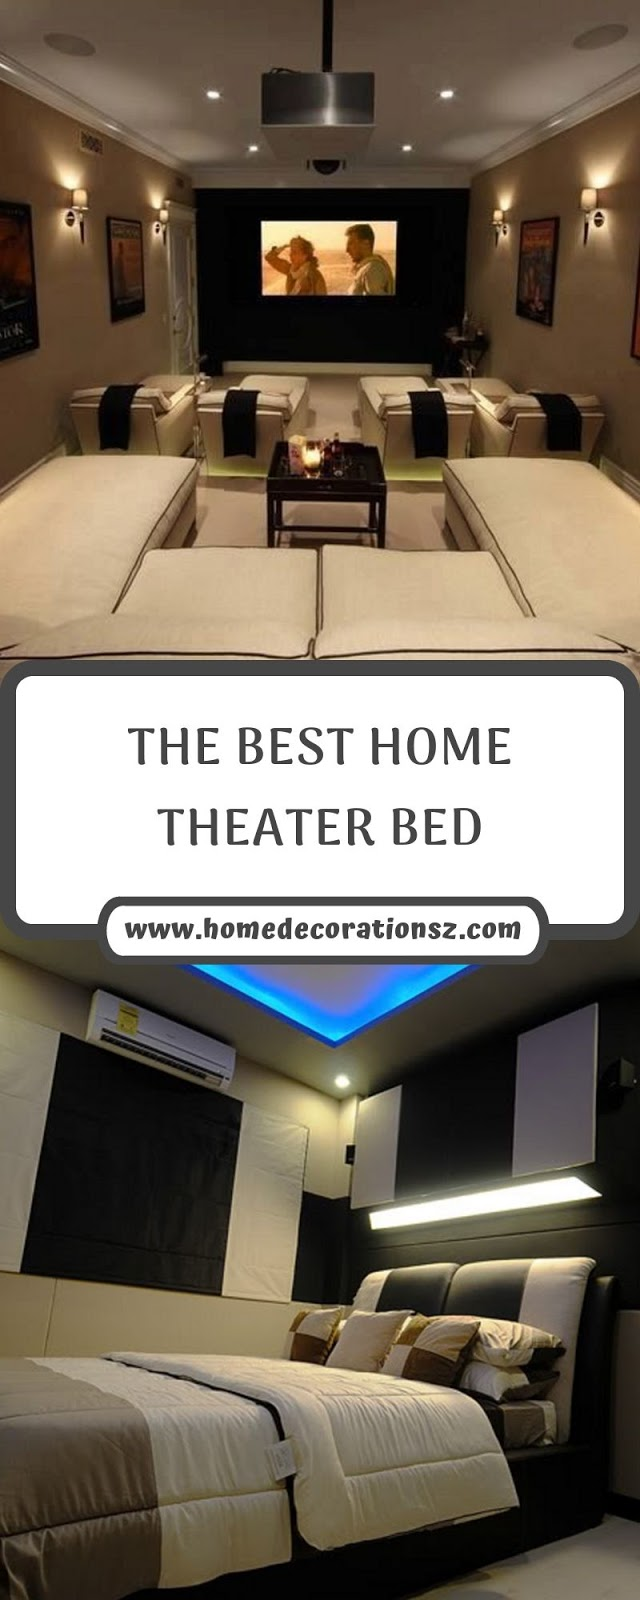 THE BEST HOME THEATER BED